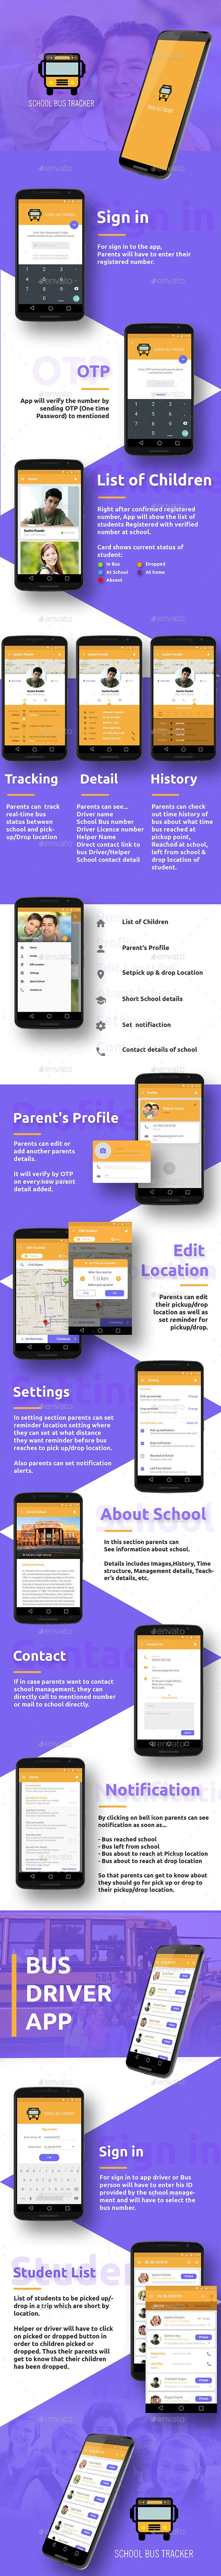 Bus Tracking Mobile App UI School bus tracking mobile app user interface. The UI contains 22 various screens. It consists of two apps, the parent app and the driver app.